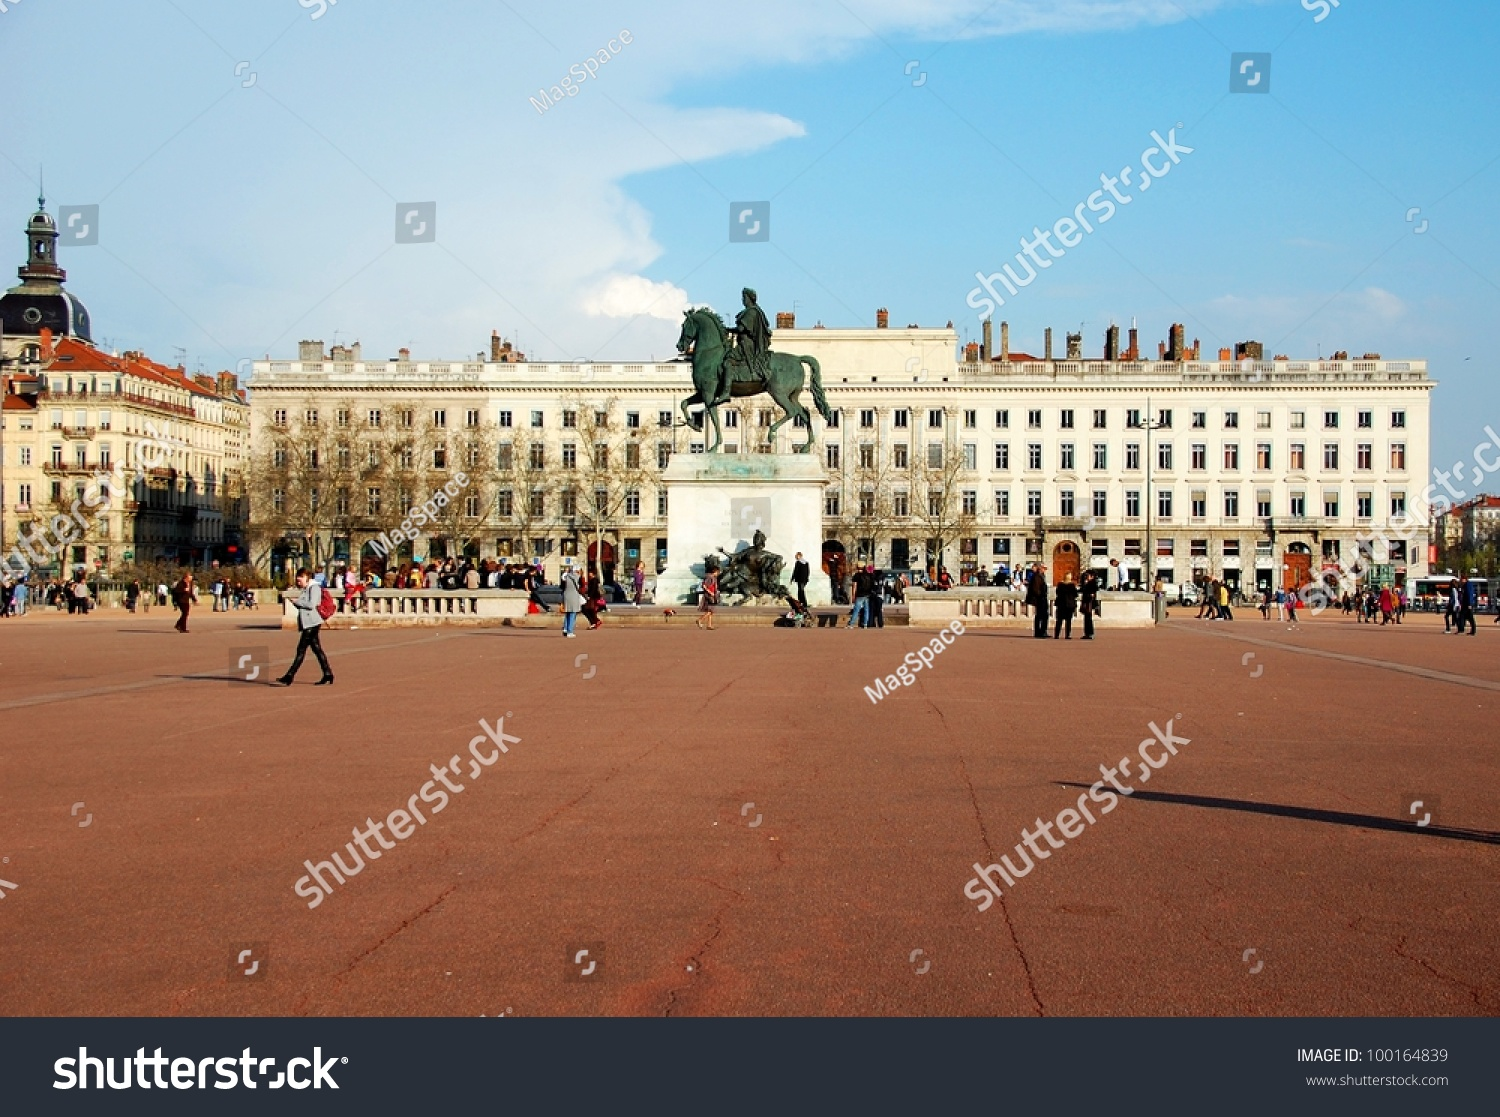 The Bellecour square in Lyon. Statue of Louis XIV. France This is the central square of city of Lyon